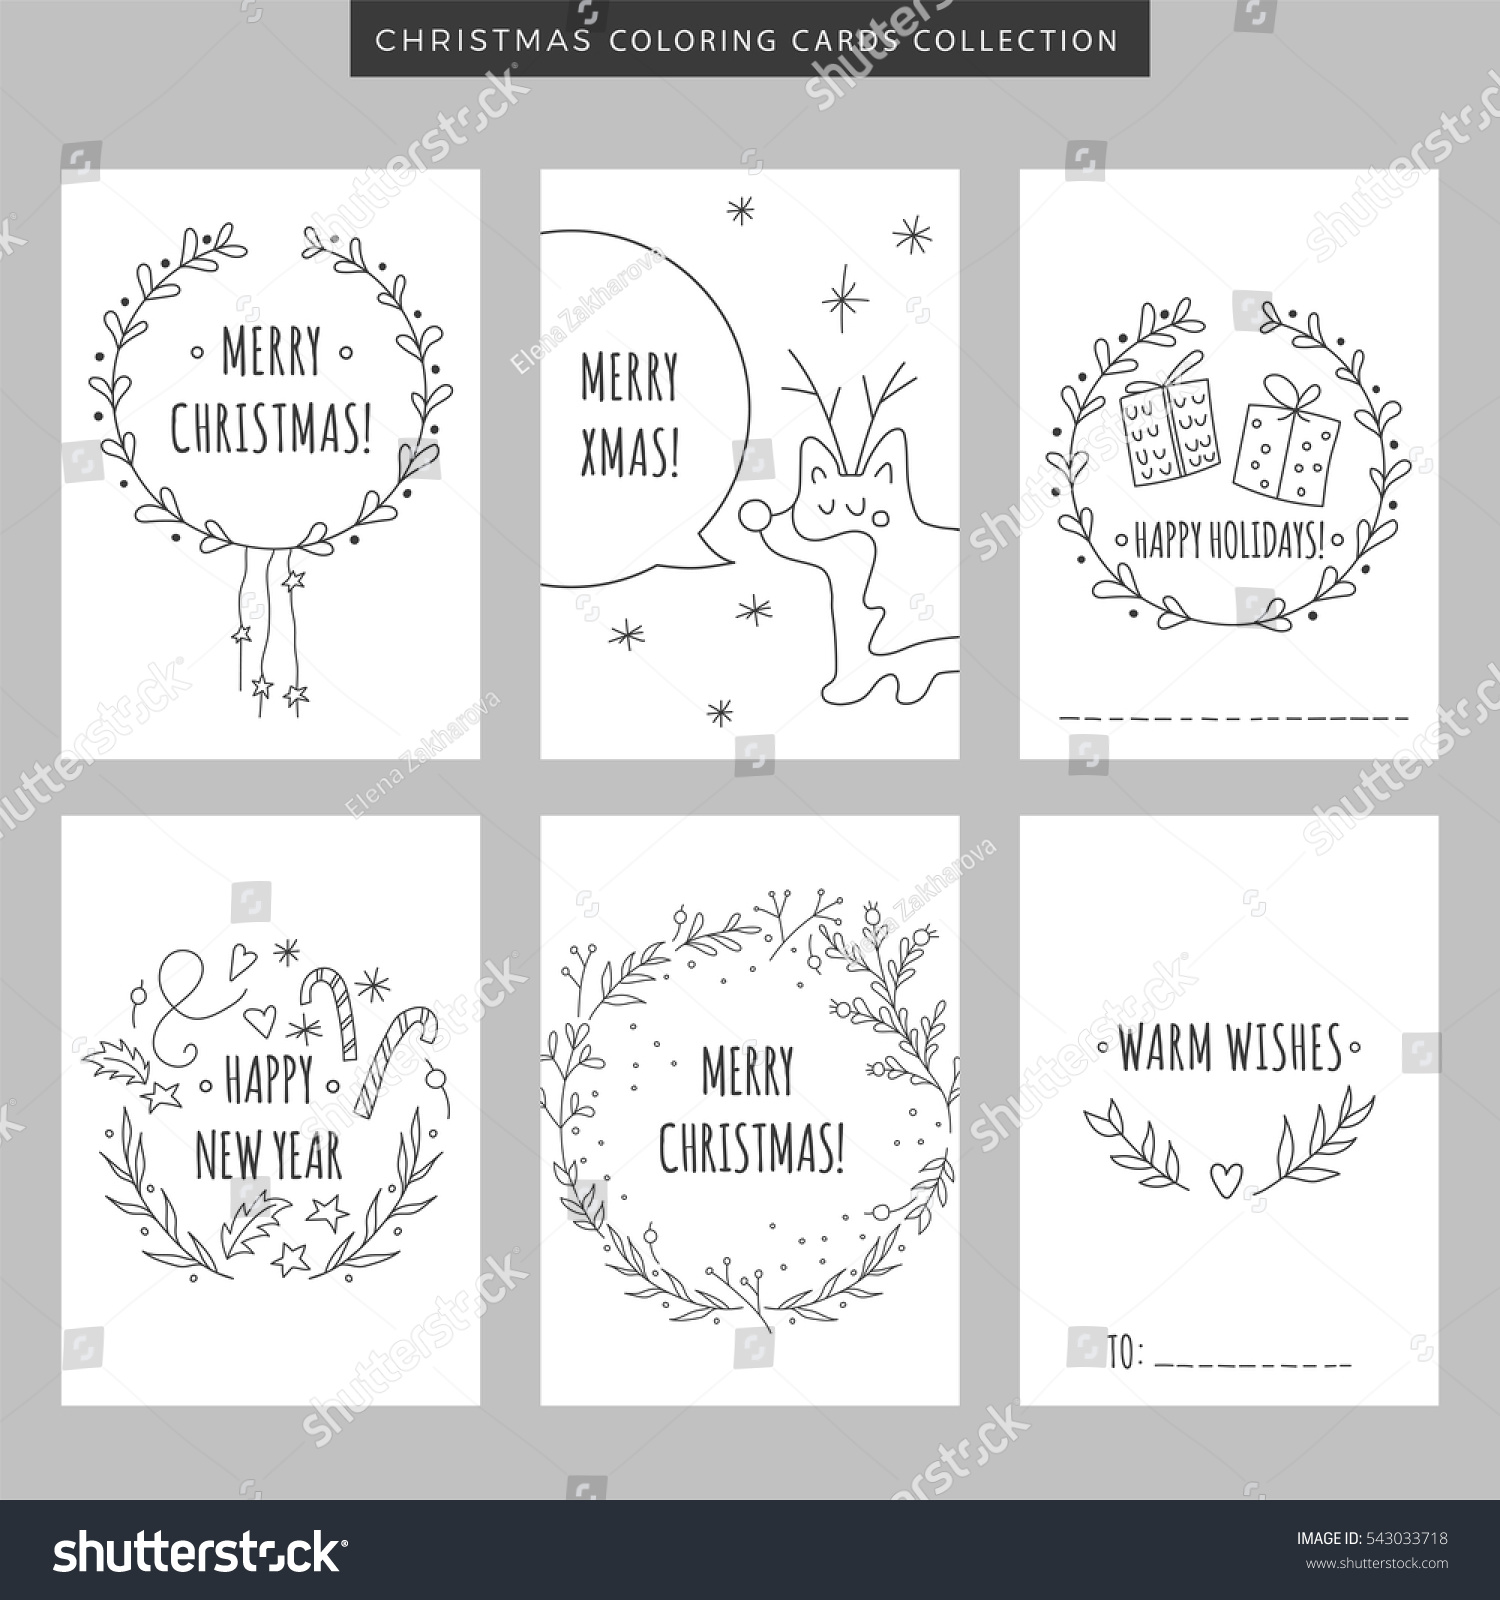 Christmas Coloring Pages Set With New Year Greeting Cards Stock Vector Royalty Free